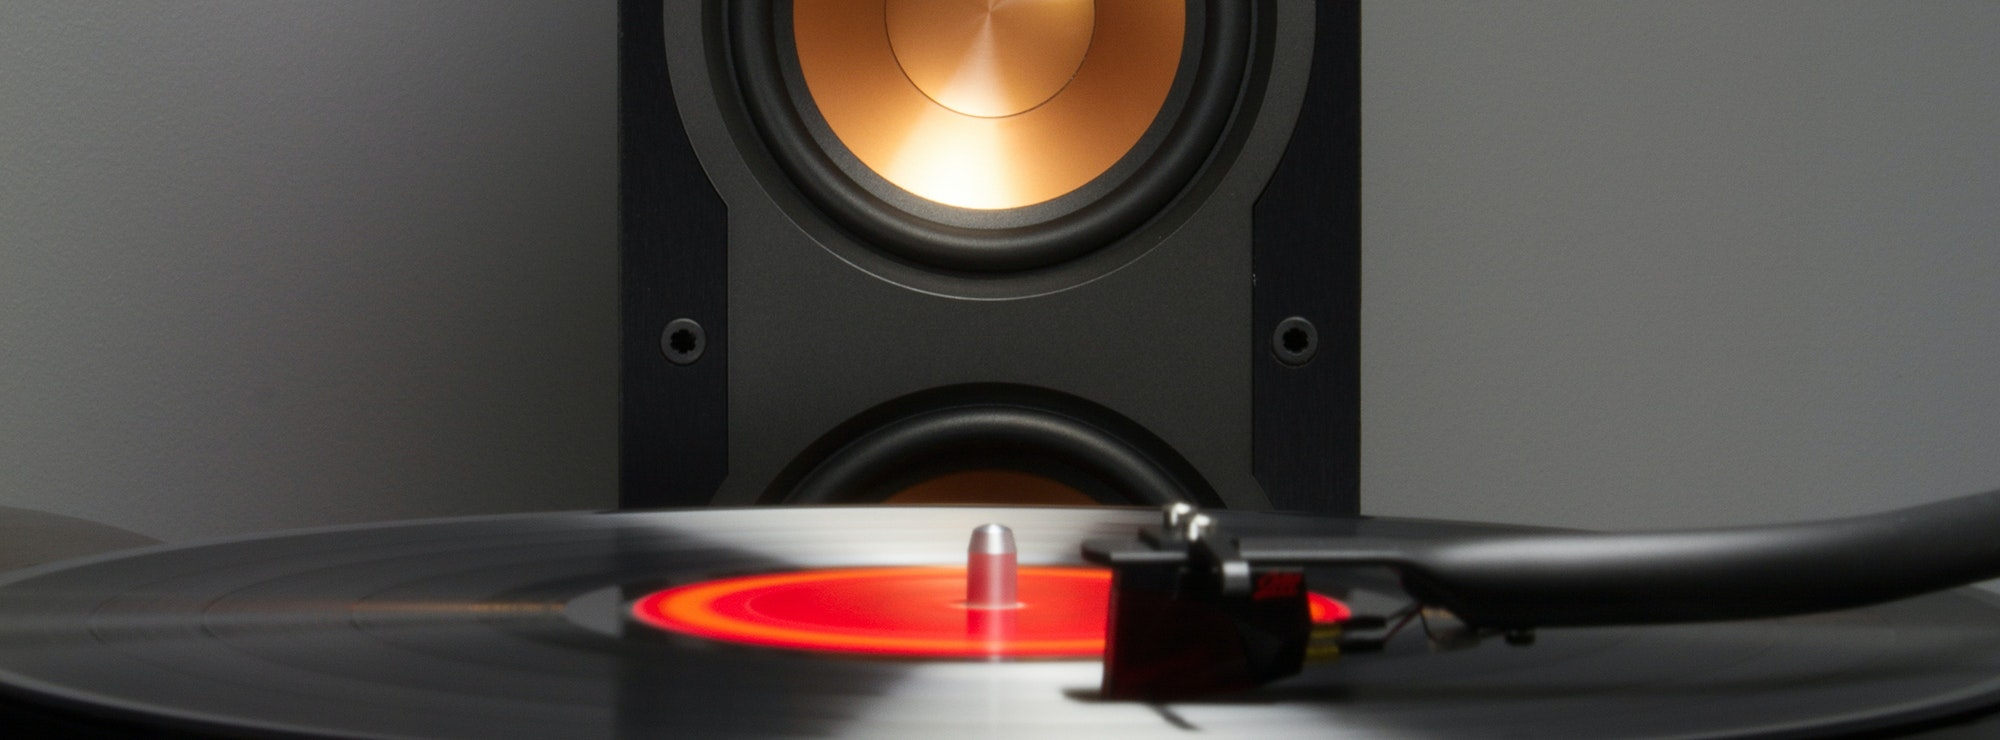 record on turntable in front of Klipsch speaker